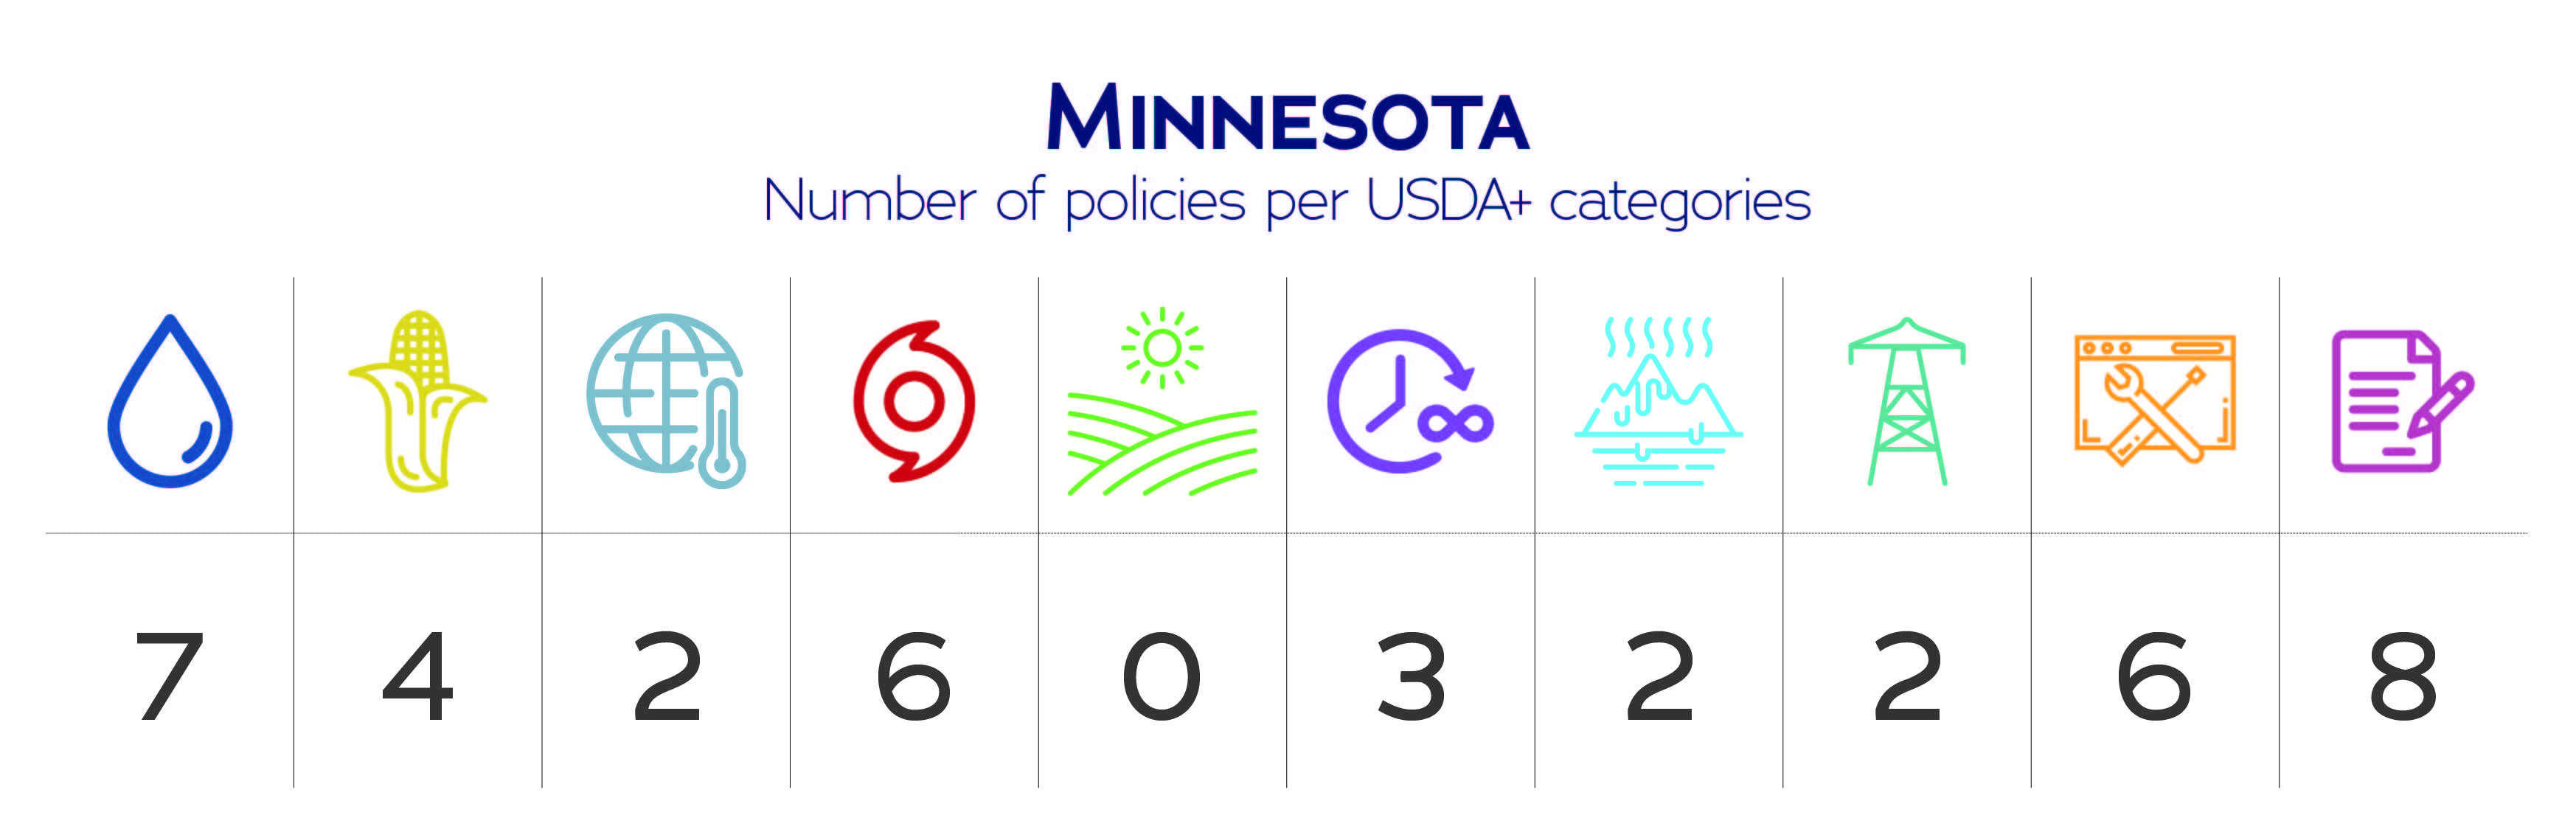 Minnesota USDA+ category data